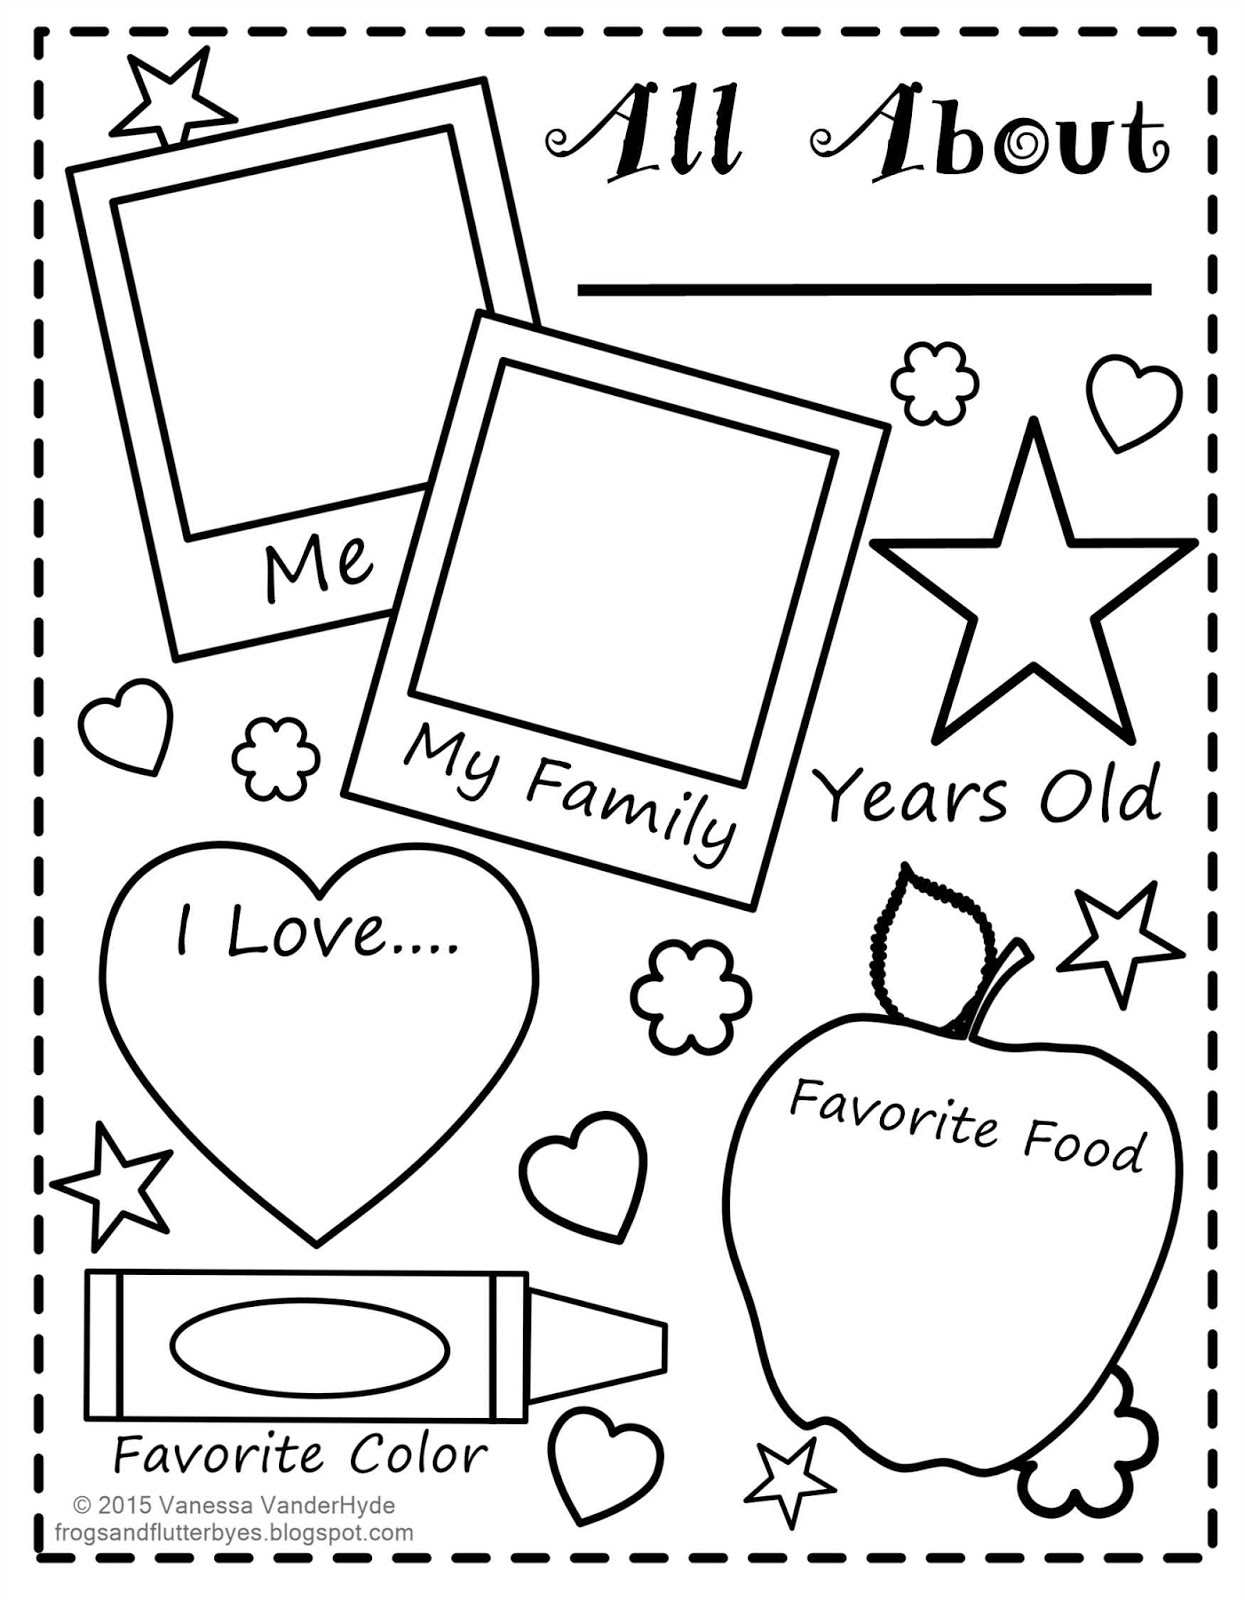 graphic relating to All About Me Printable known as The Frogs and the Flutterbyes: All With regards to Me Cost-free Printable